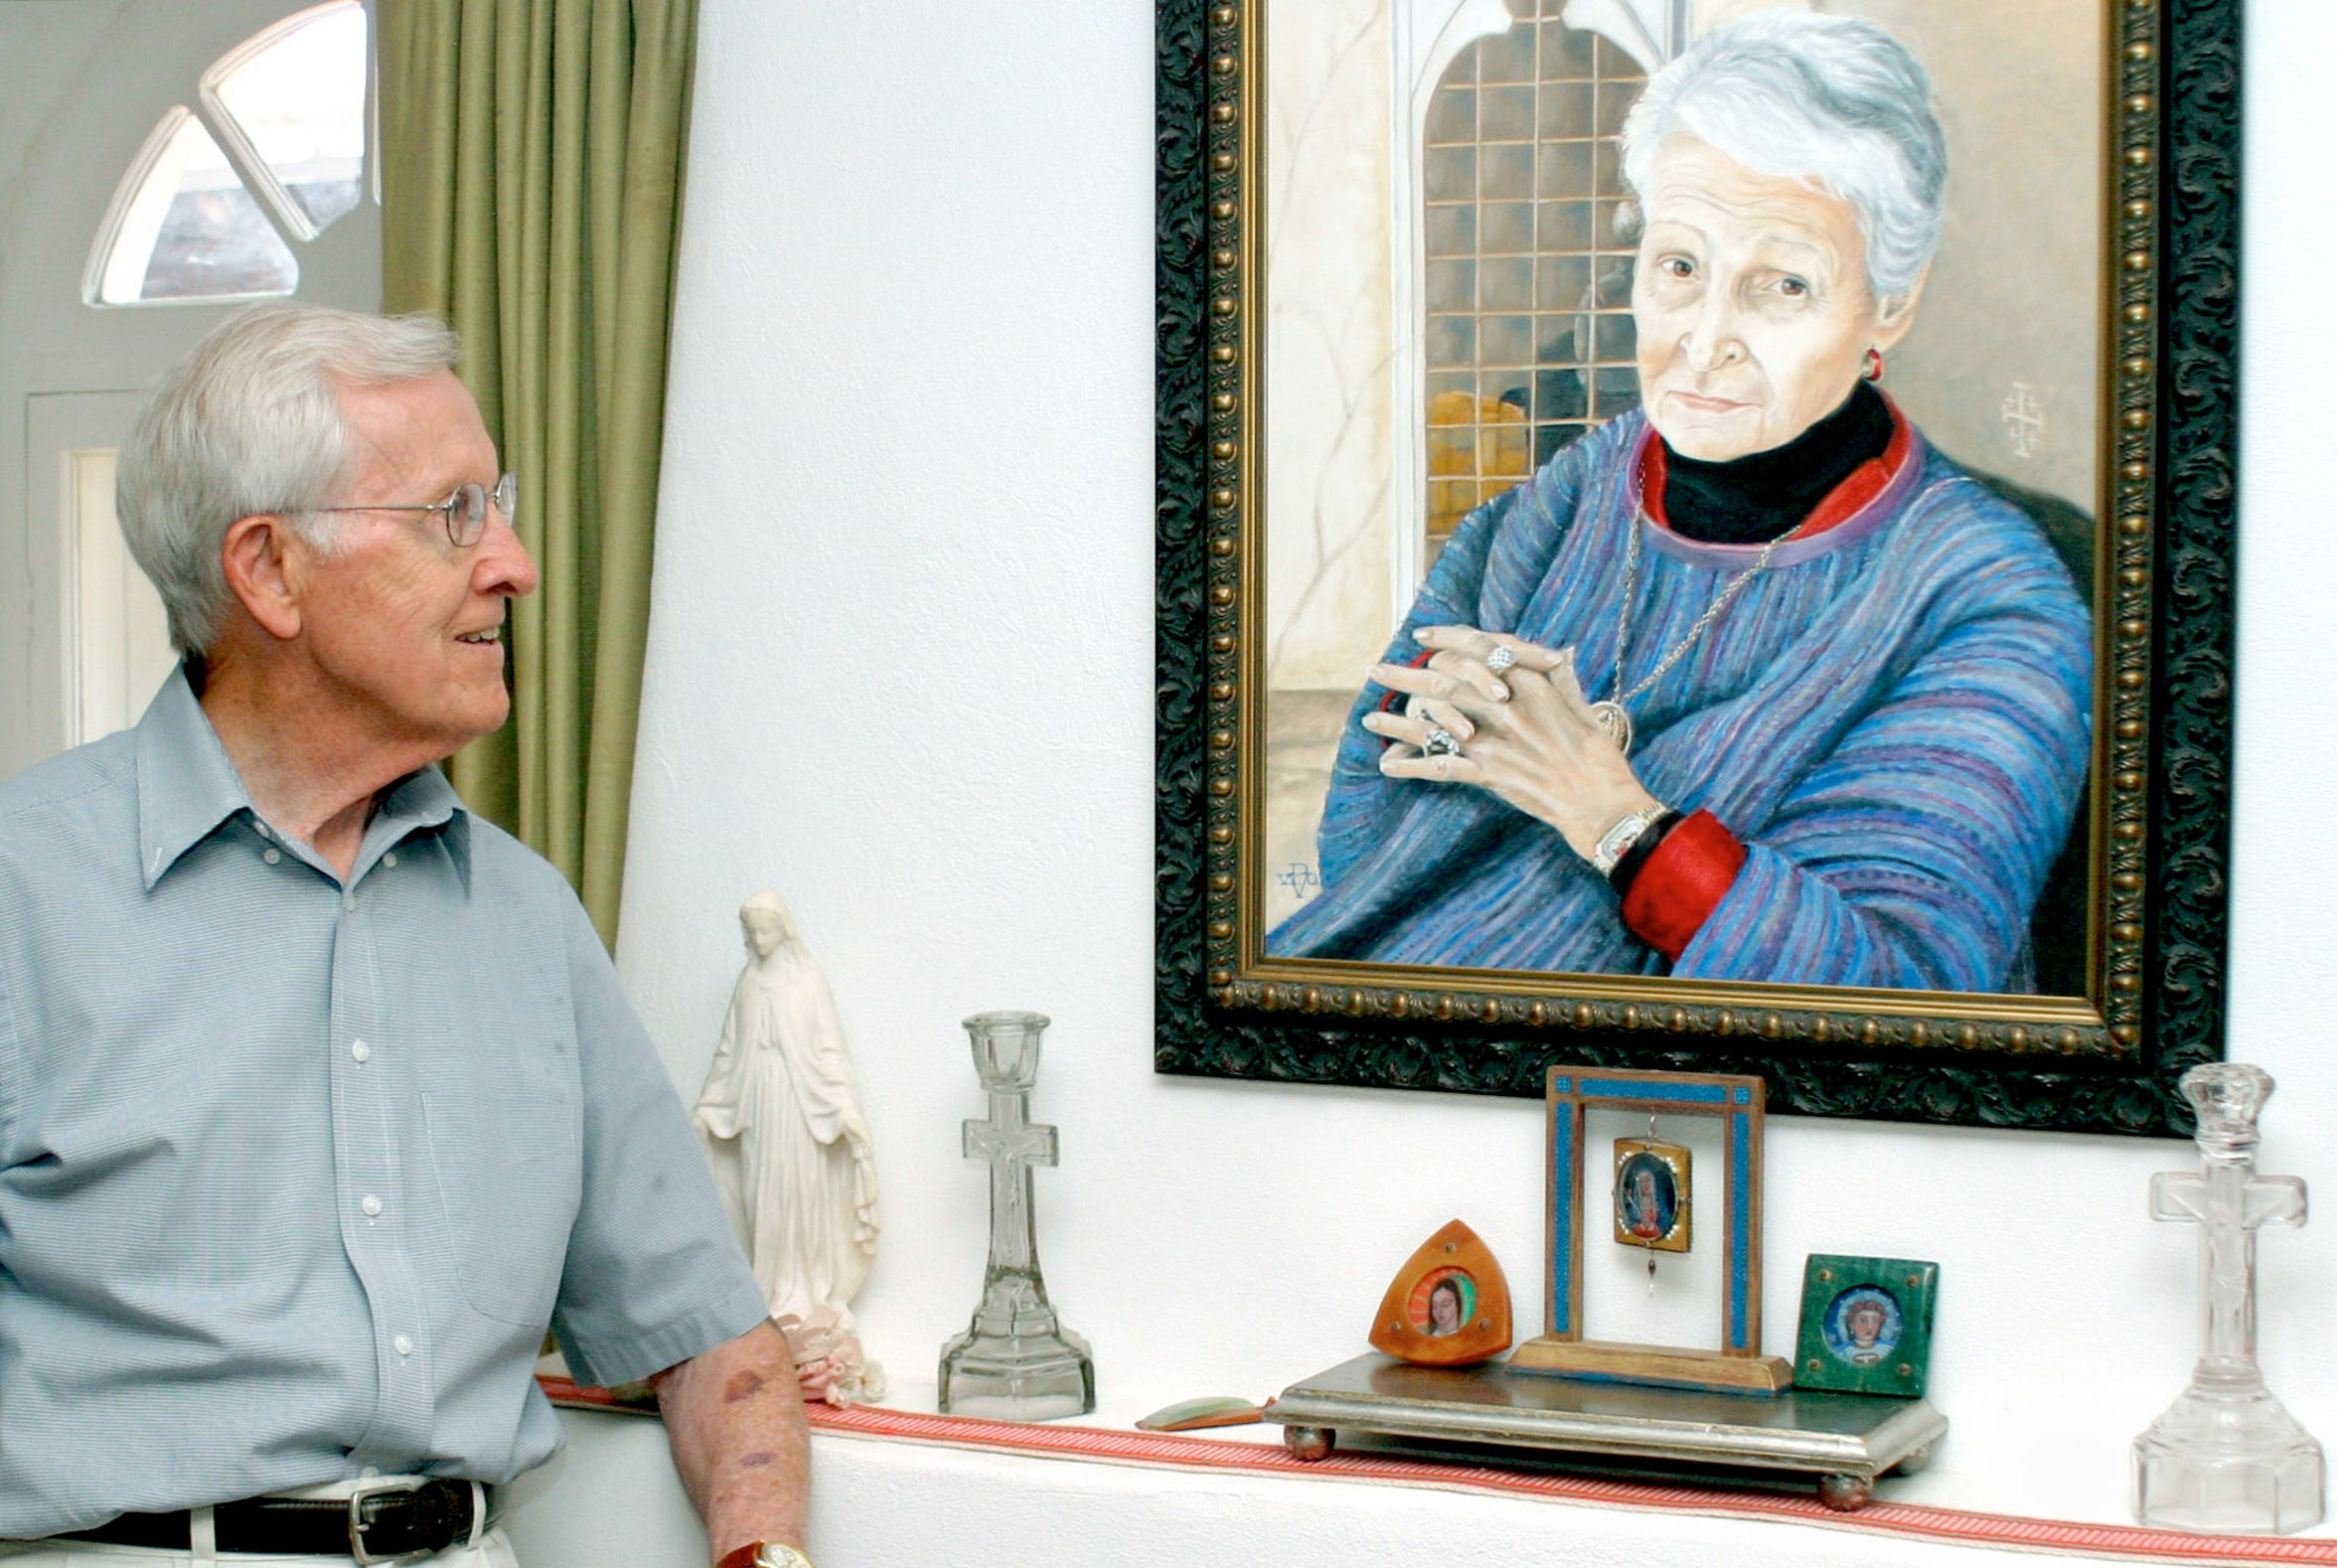 During a tour of his Mesilla home in 2011, former state representative J. Paul Taylor admired a portrait of his wife, Mary, who died Wednesday. The couple married in 1945.